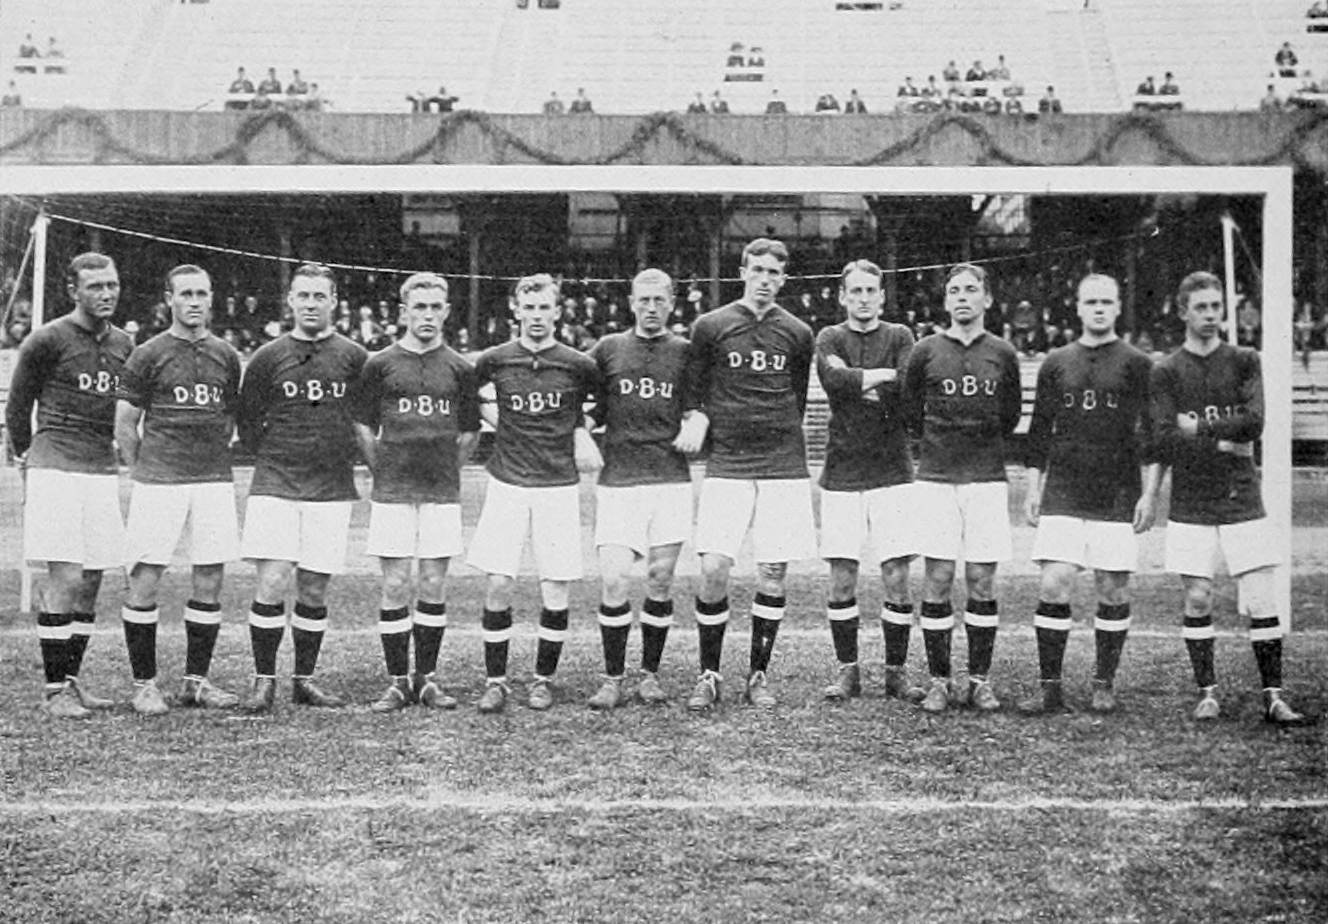 Argentina at the 1920 Summer Olympics